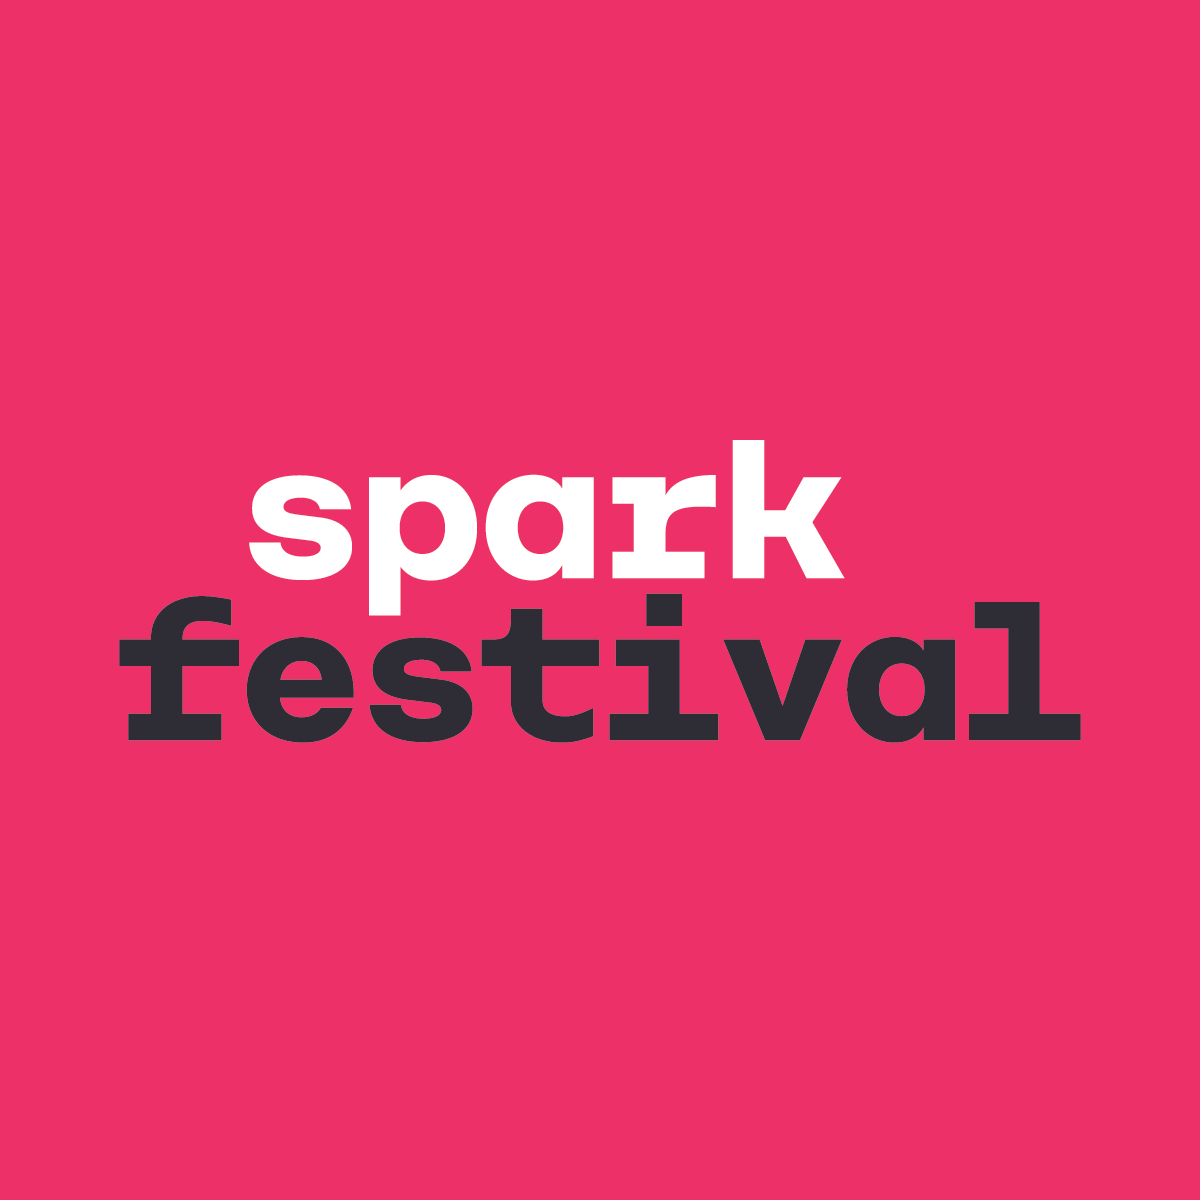 Spark Festival | Events for startups, innovators, entrepreneurs